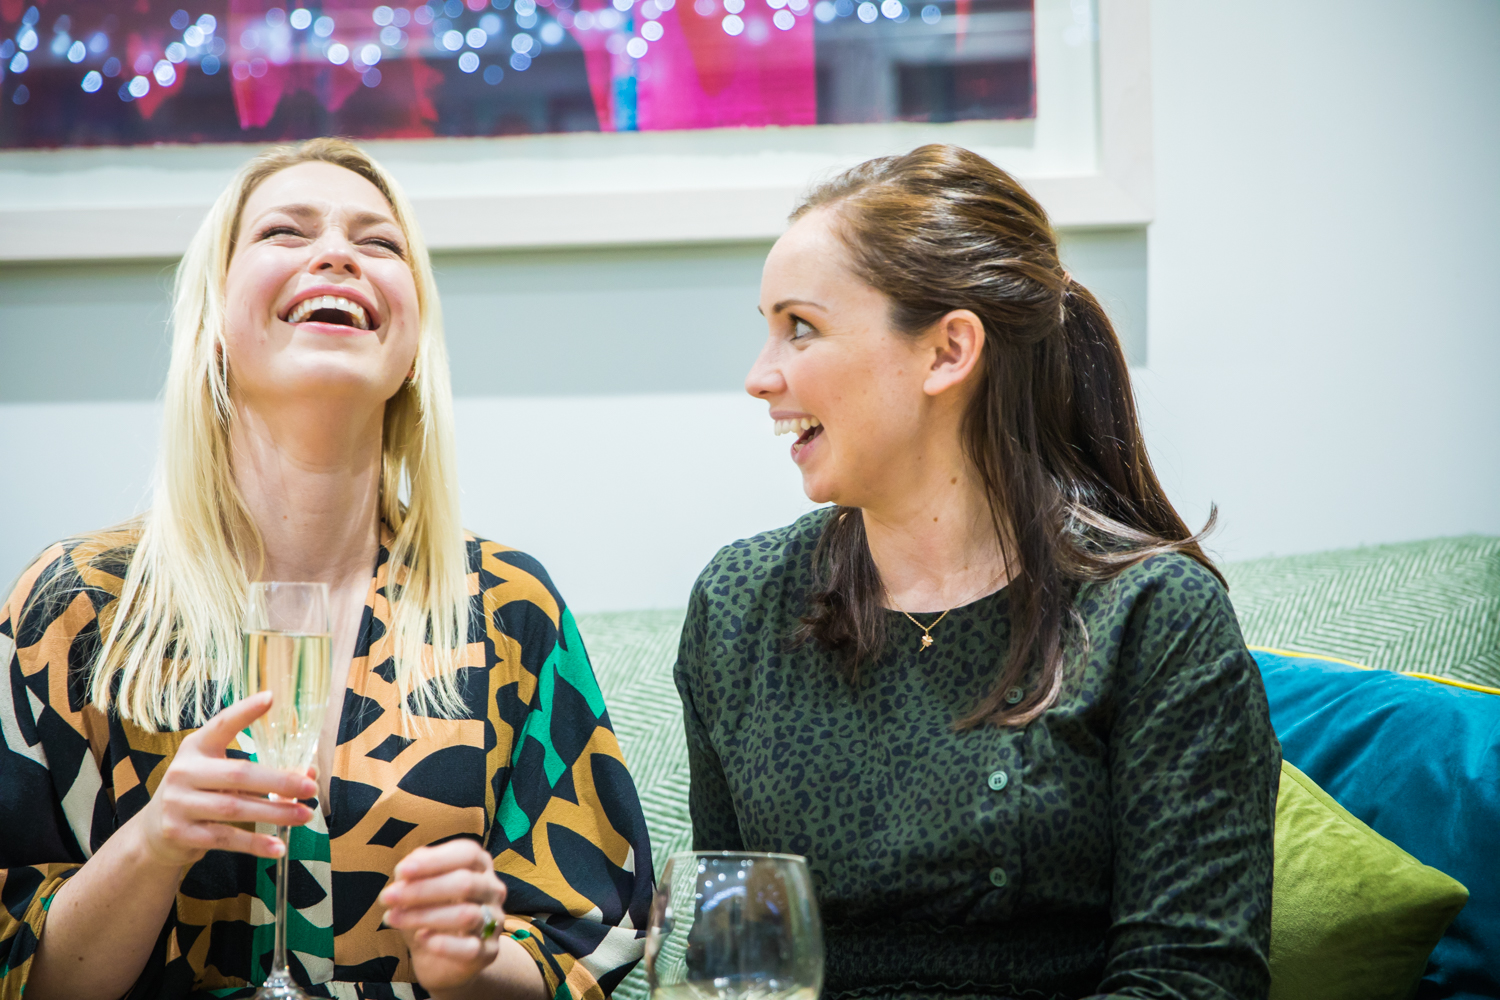 Charlotte and Vicky and curate the most amazing guest list and menu in their Supper Clubs for creative entrepreneurs.